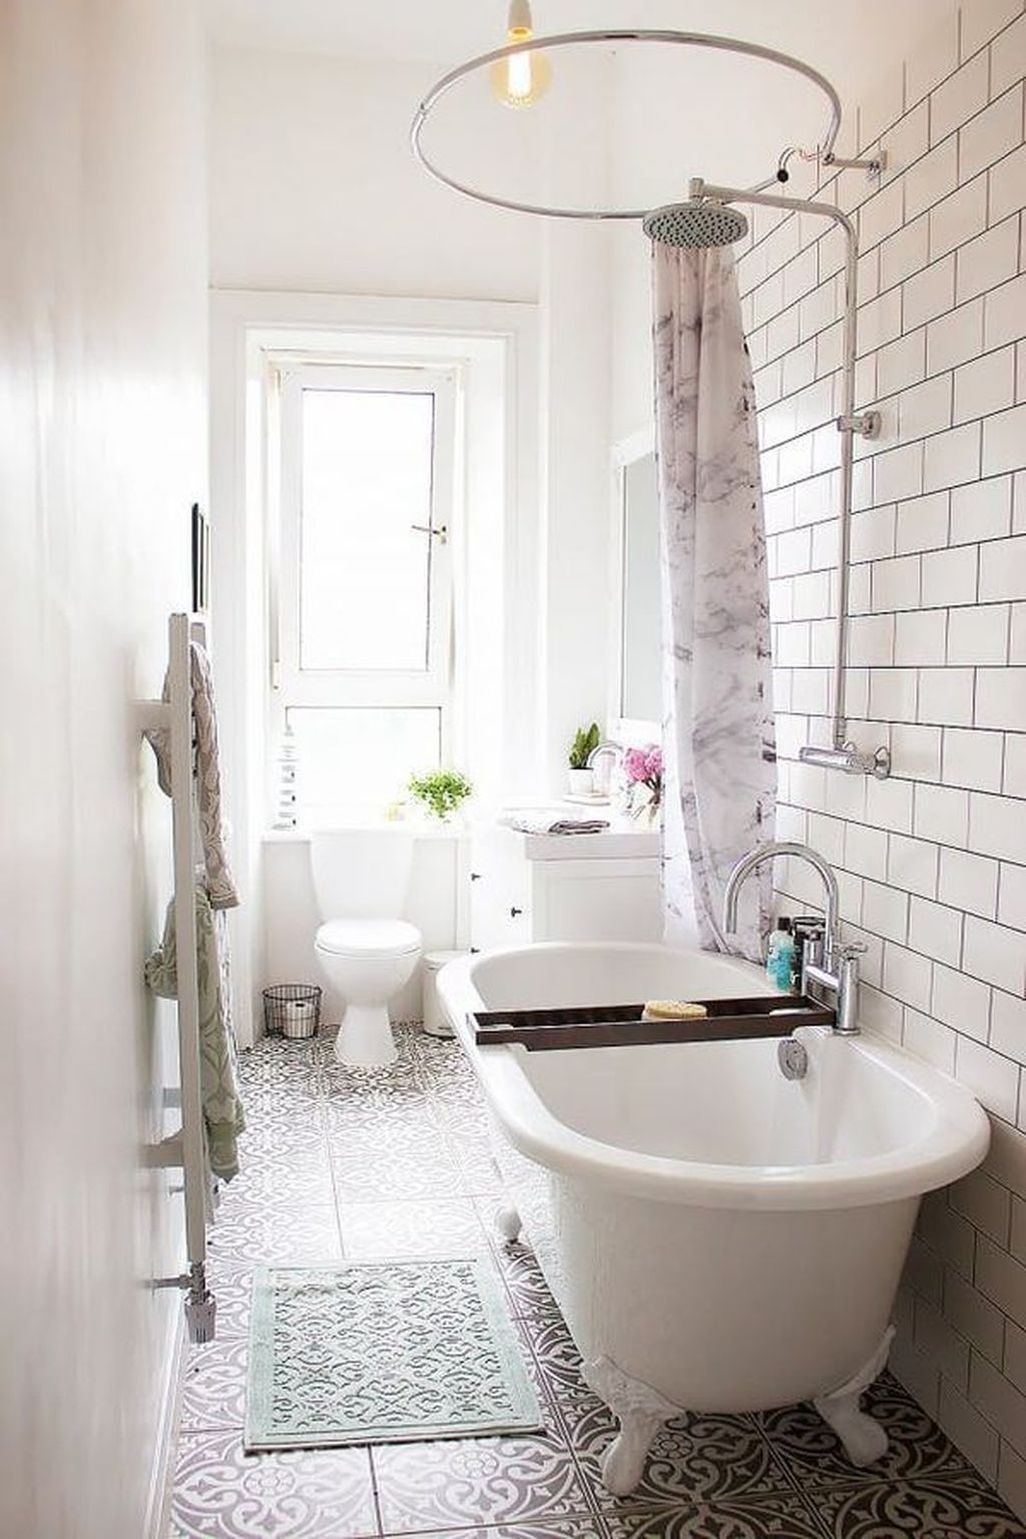 45 Amazing Modern Small Bathroom Design Ideas - HOMISHOME on Amazing Small Bathrooms  id=66537